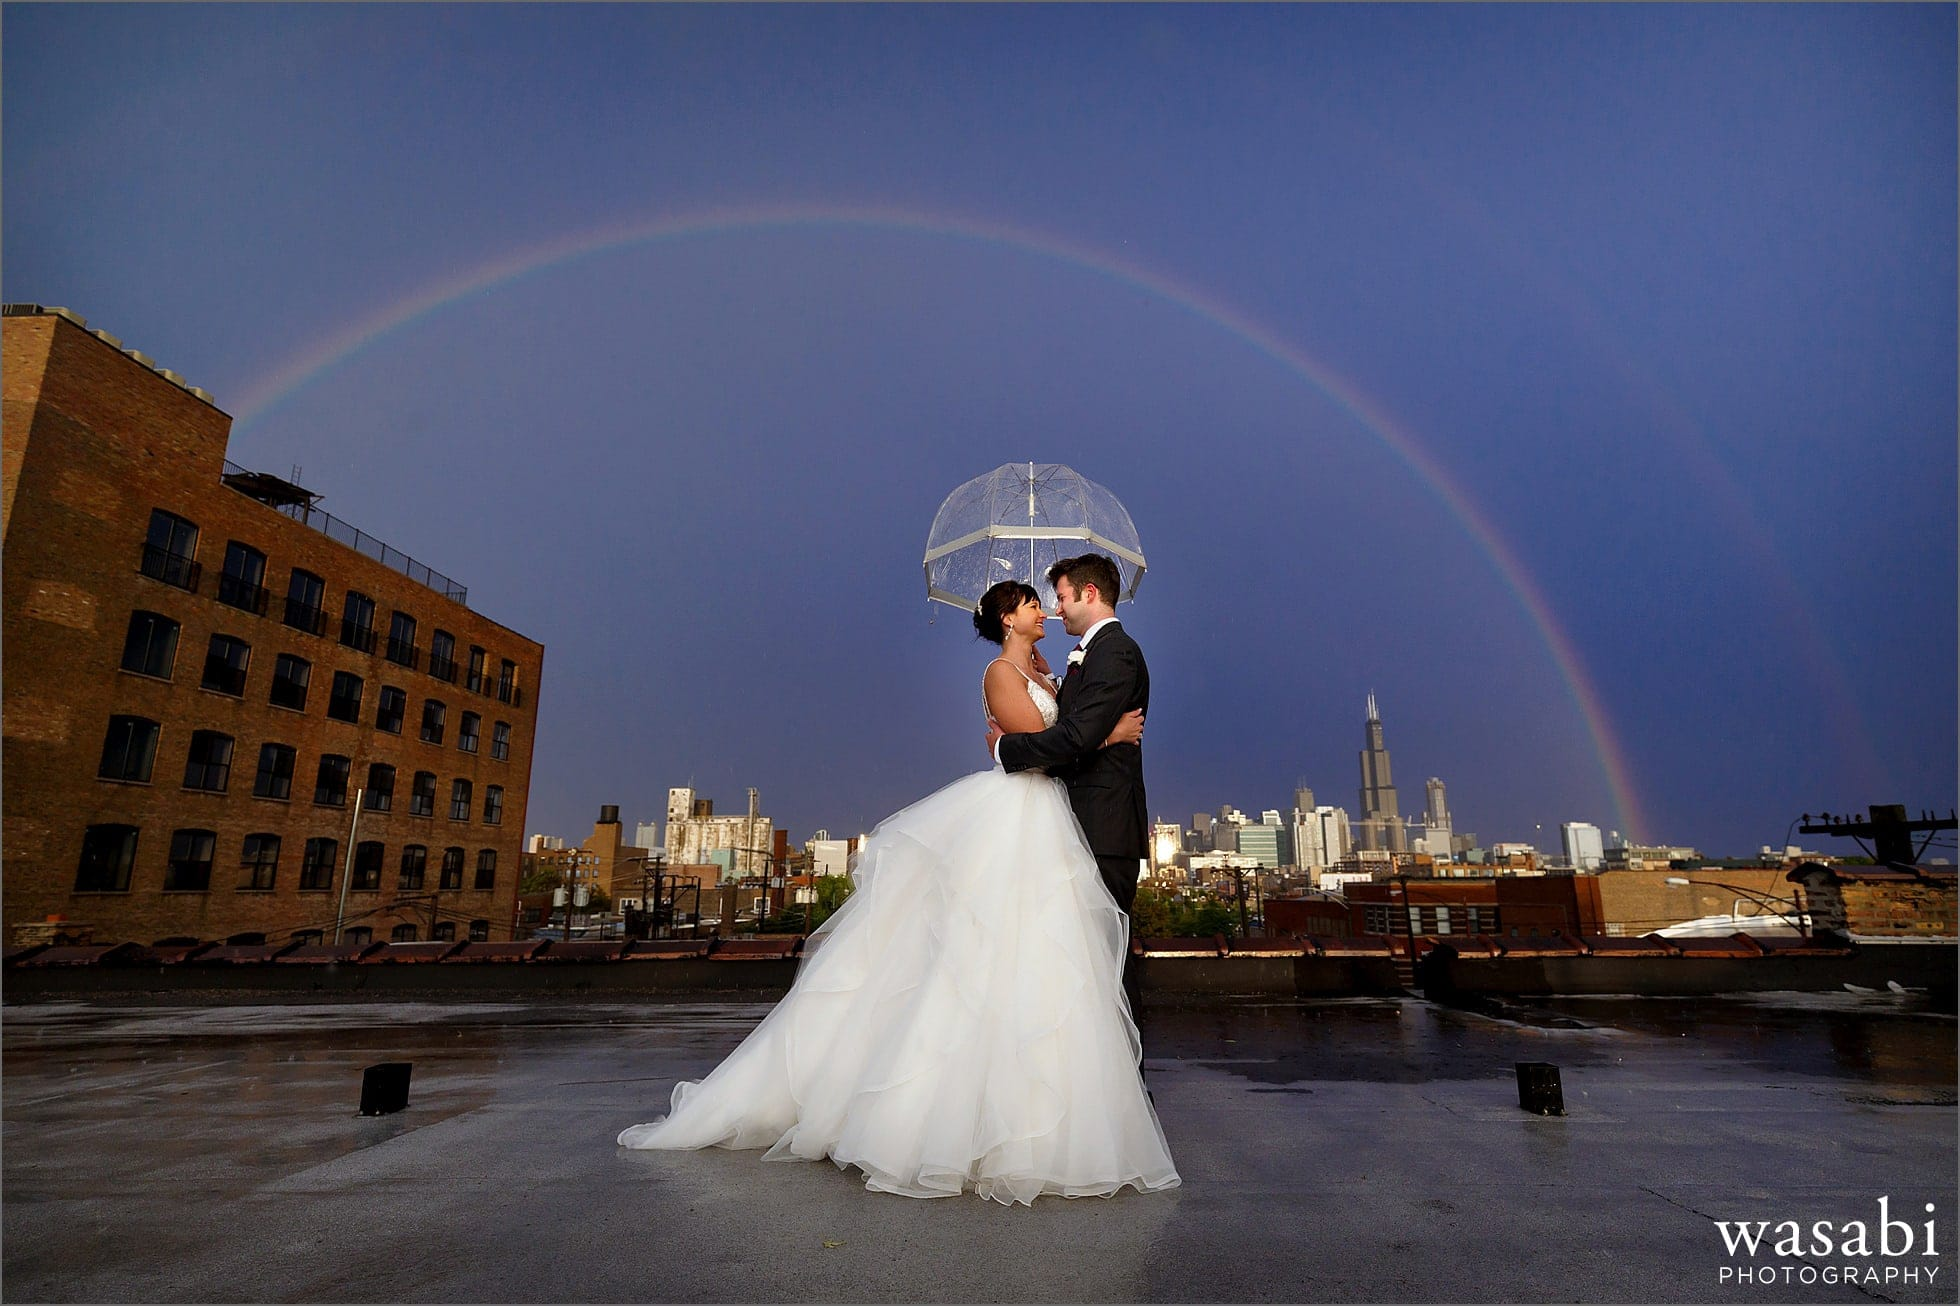 bride and groom pose for a wide angle chicago skyline rainbow wedding photo under an umbrella on the rooftop of Room 1520